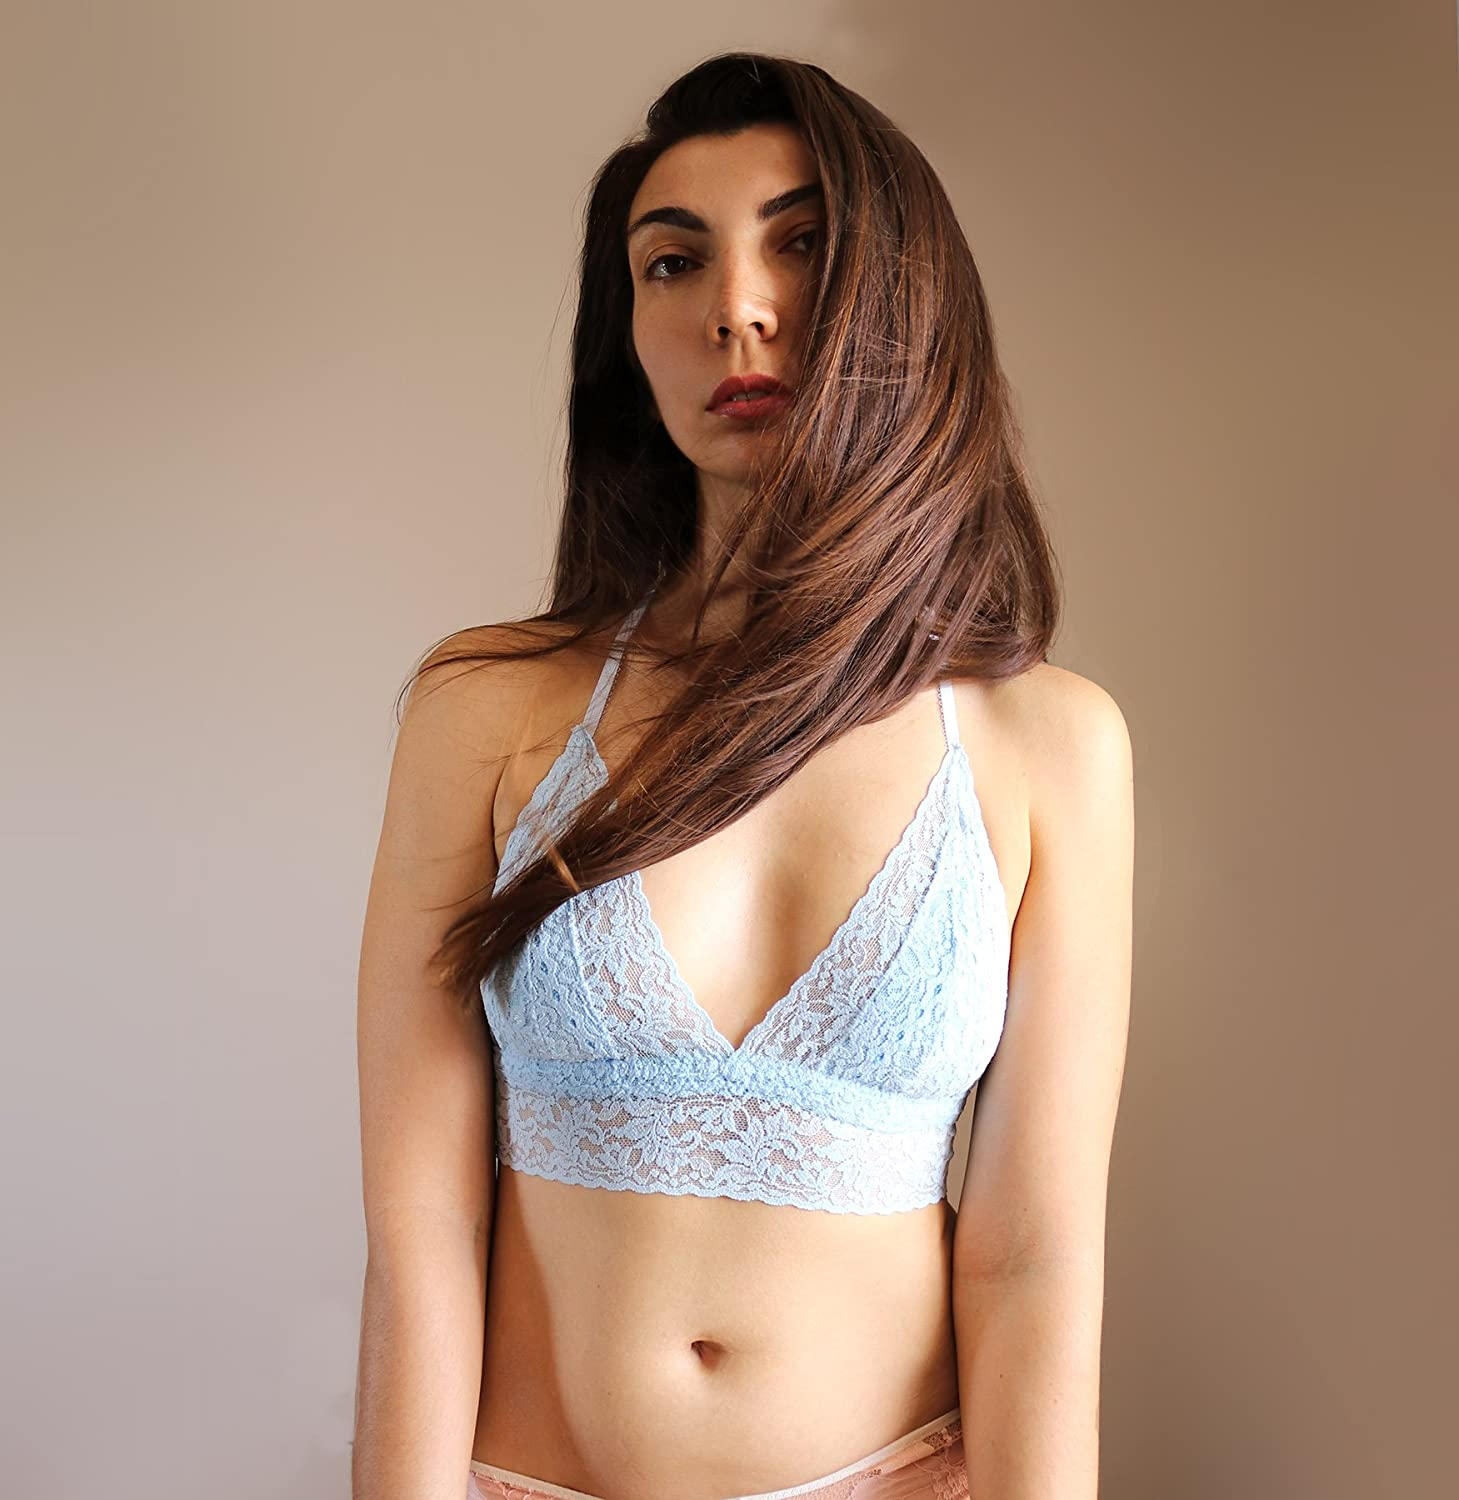 Light Blue Lace Bralette. Triangle Back Halter Wireless Bra Top. Bridal Lingerie